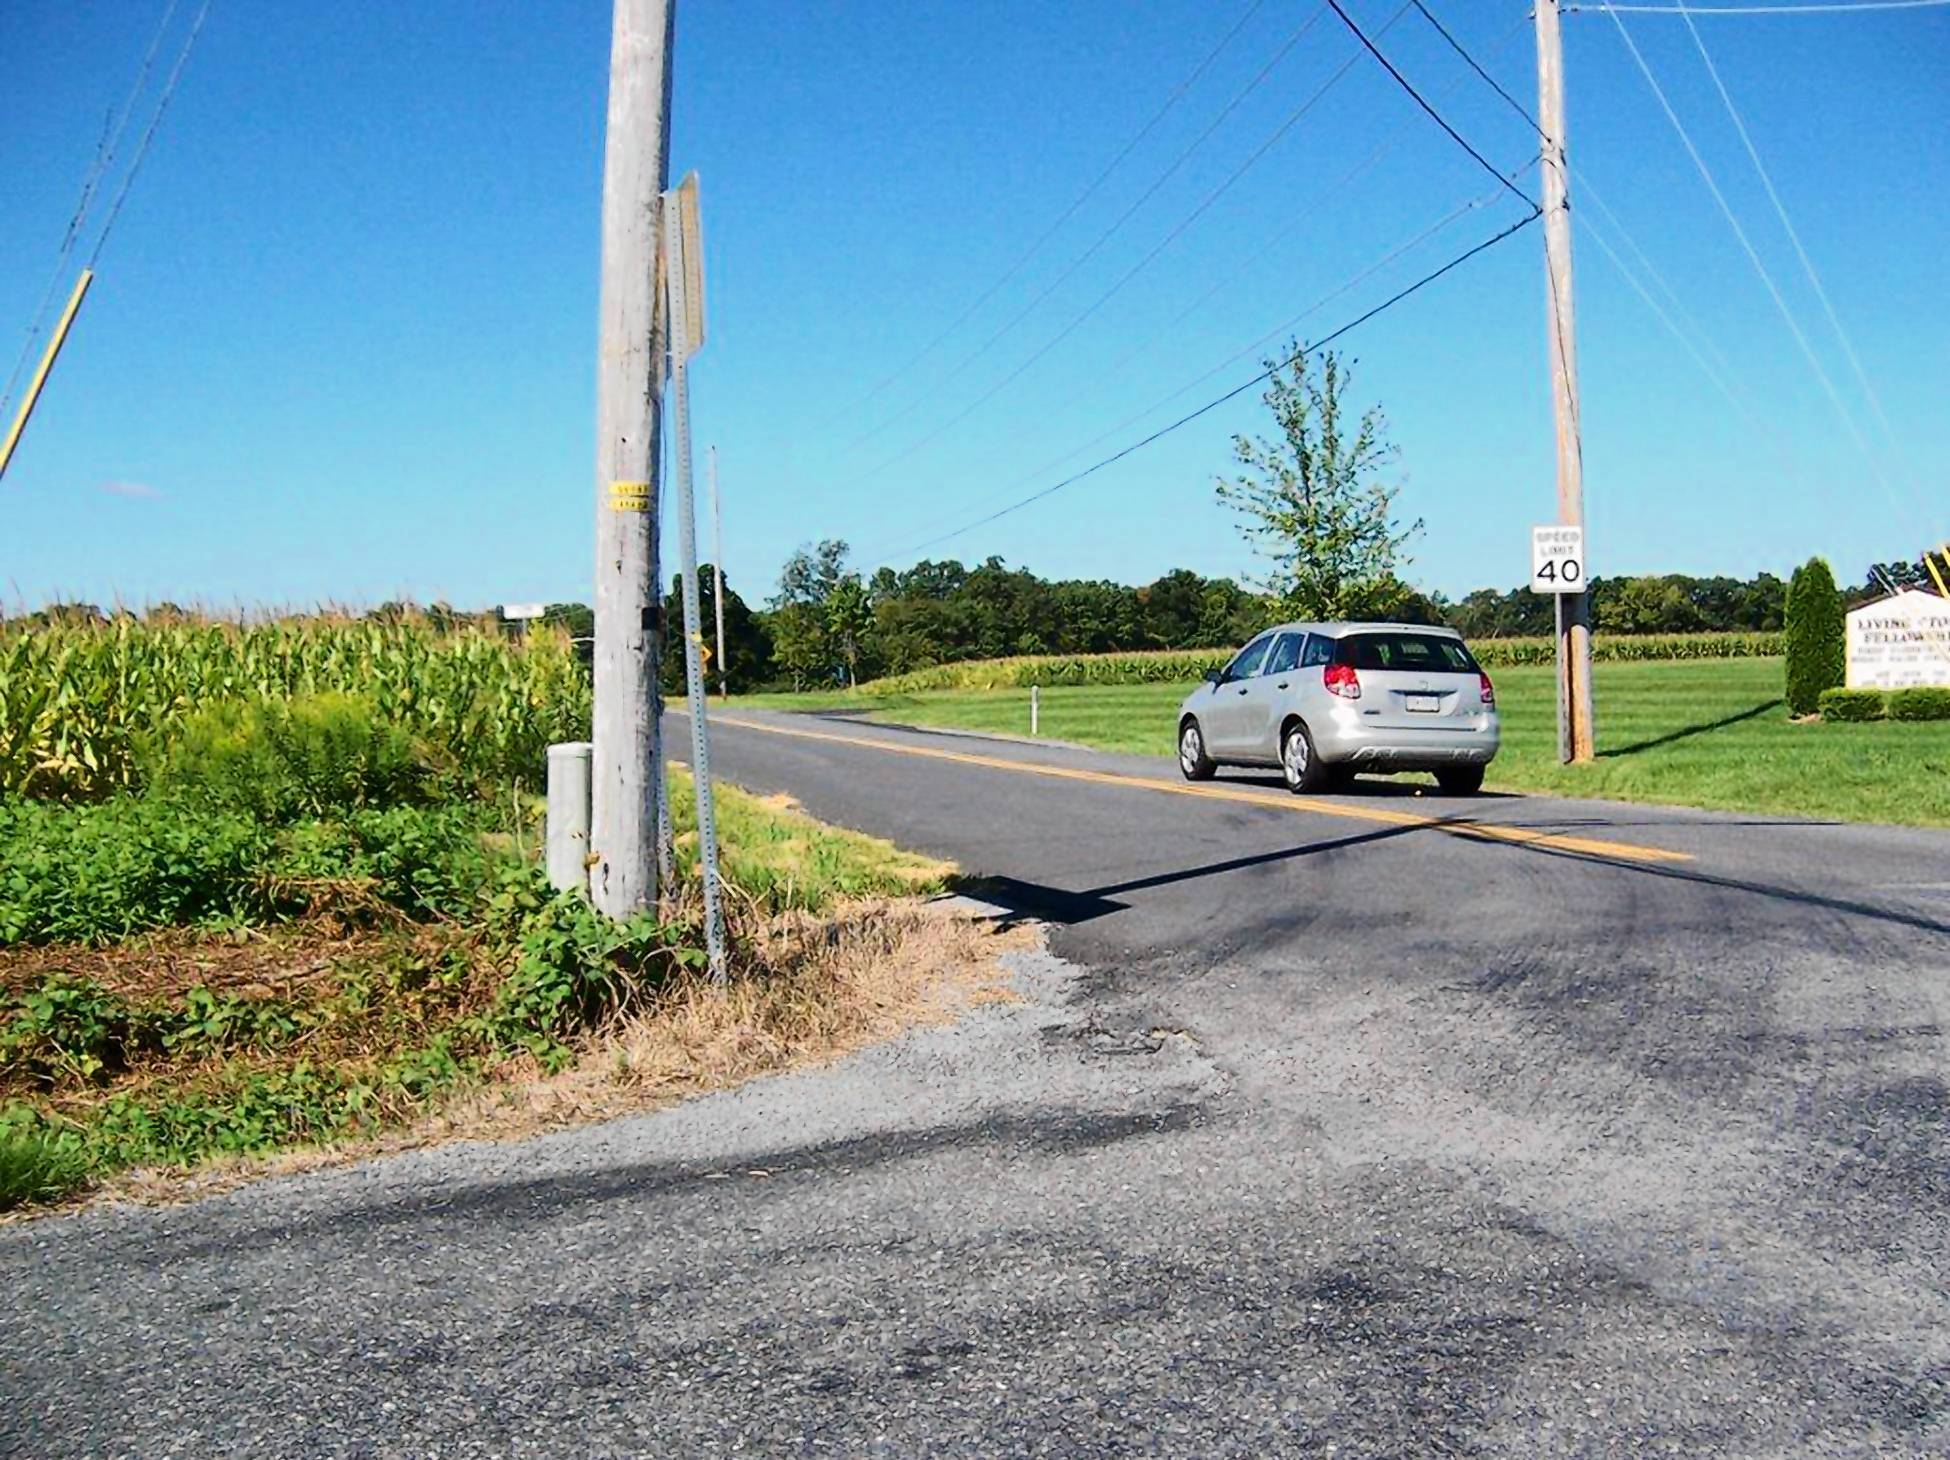 The view of eastbound traffic on Flint Hill Road from a car on Long Court in Heidelberg Township is cut short by the corn crop and a utility pole.